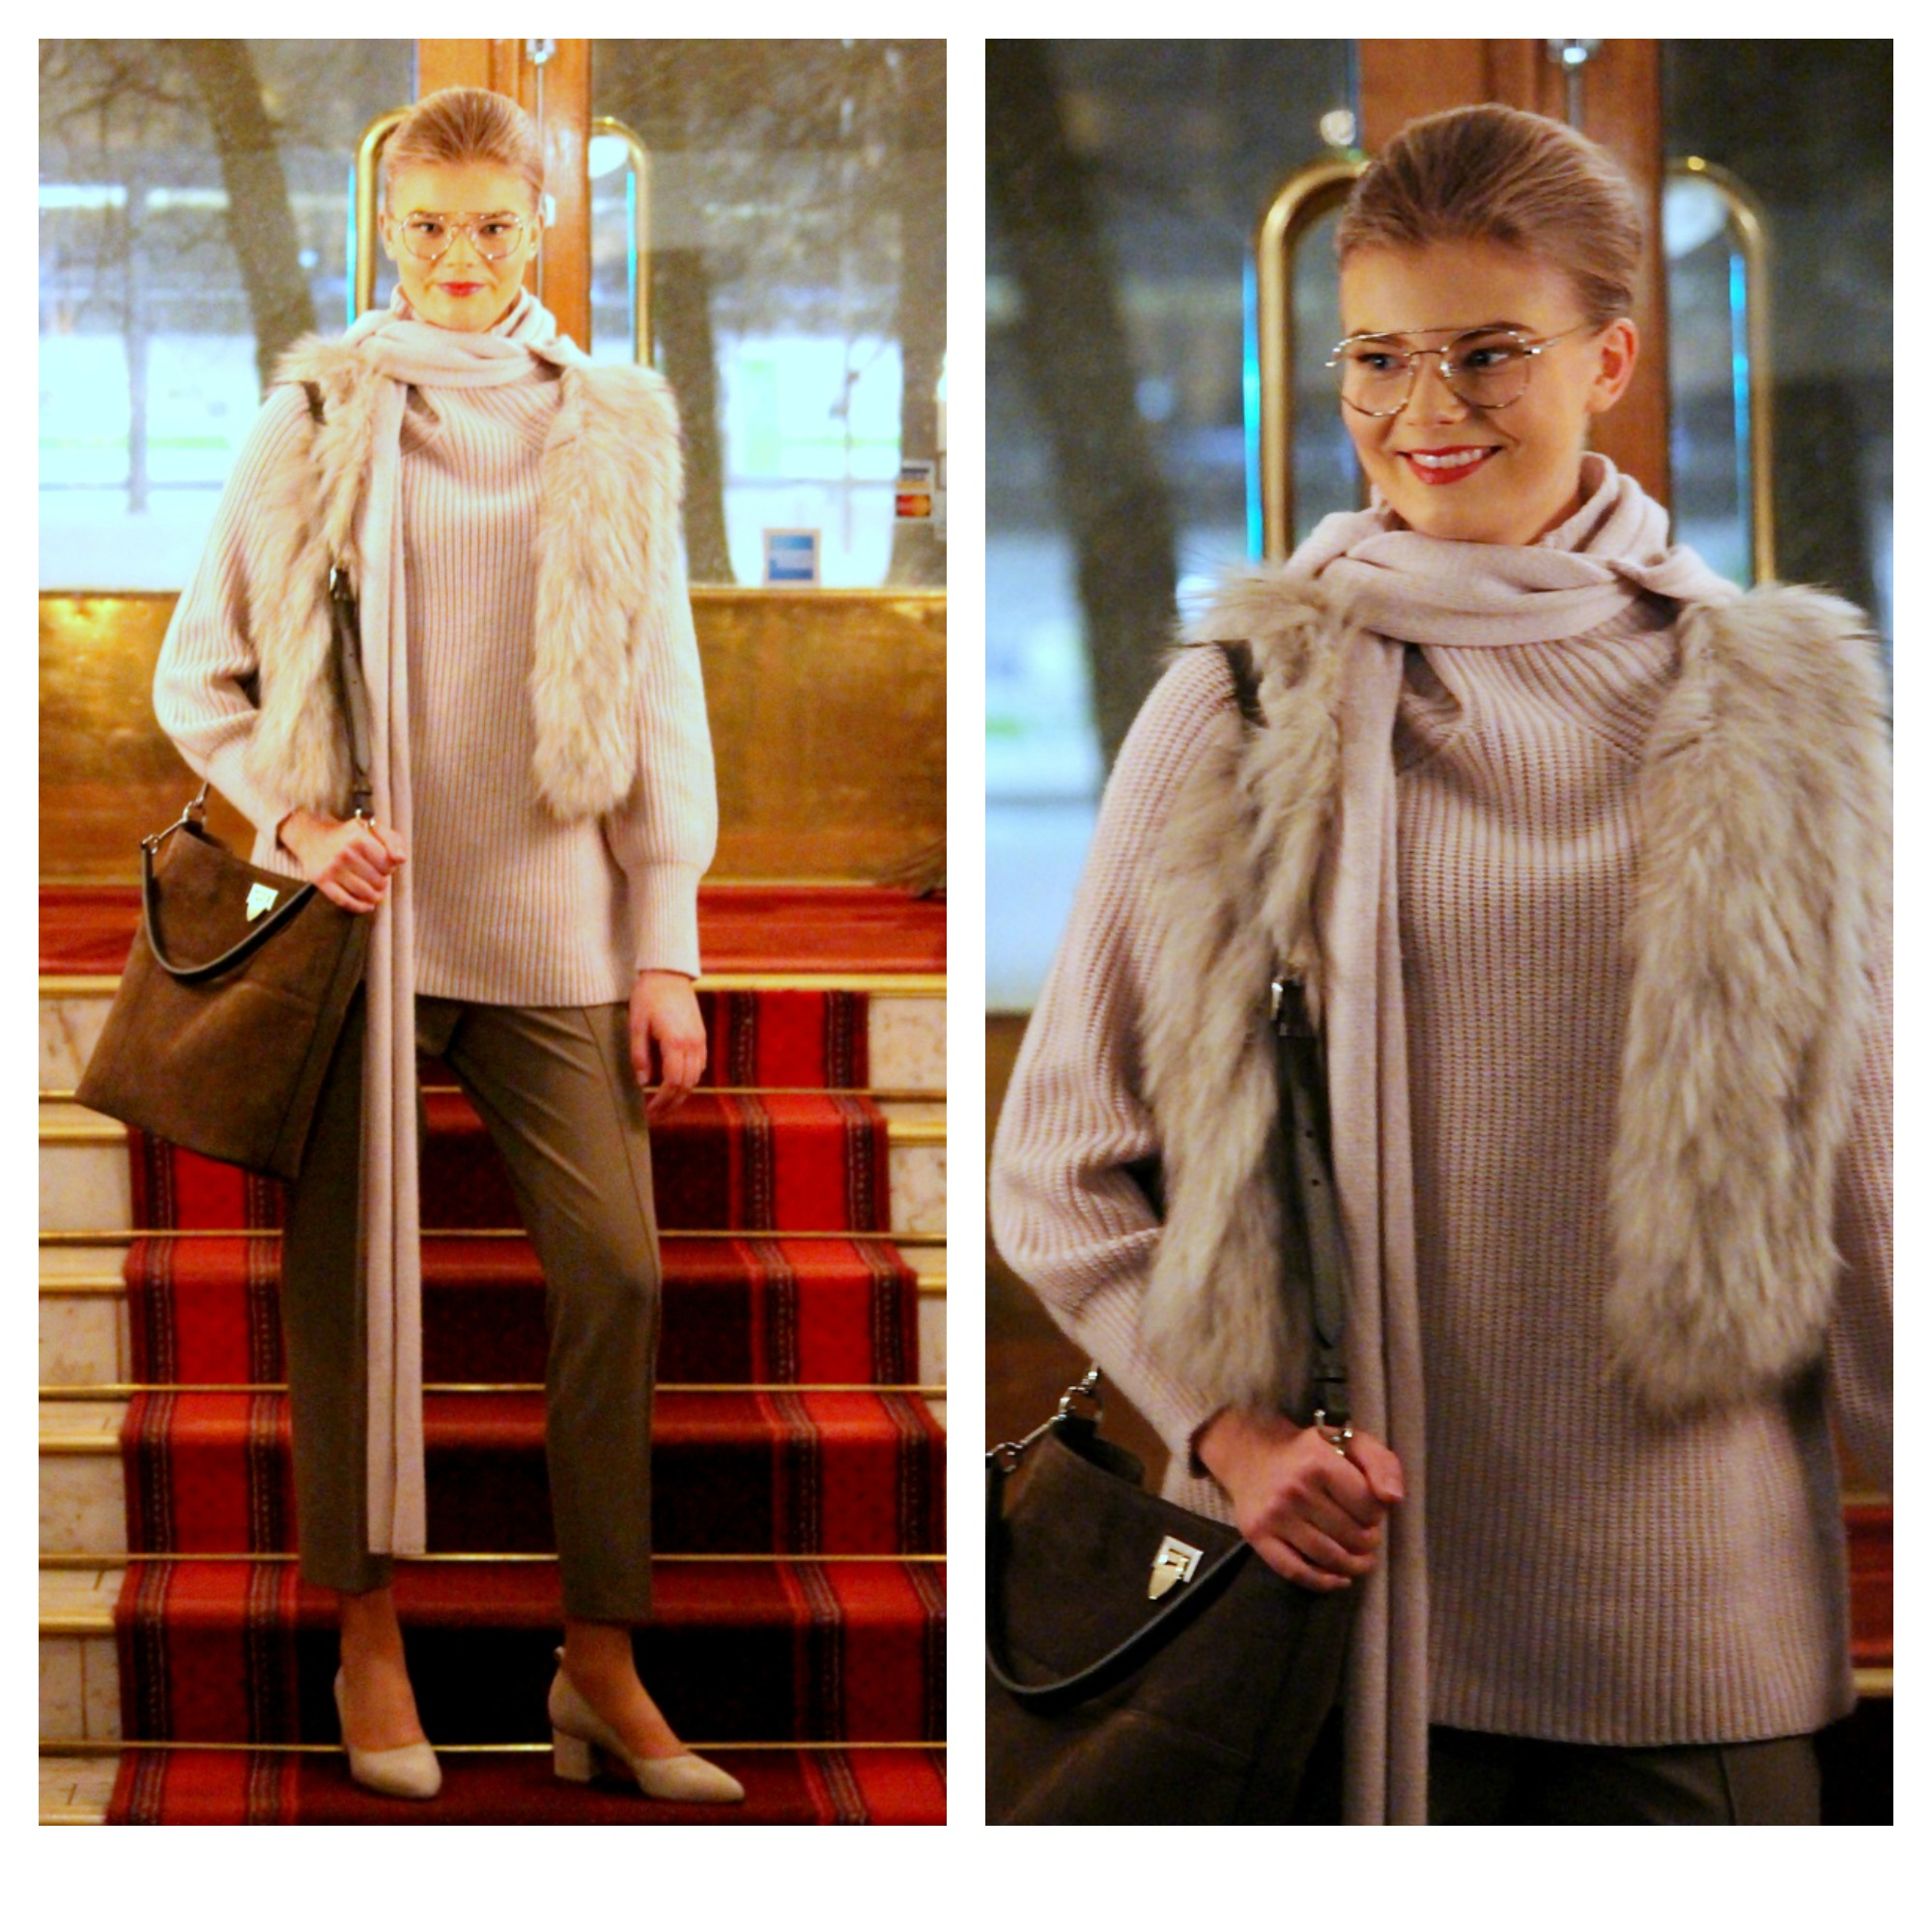 Filippa K knits & trousers, Natures Collection fur vest, Decadent bag, ATP Atelier shoes